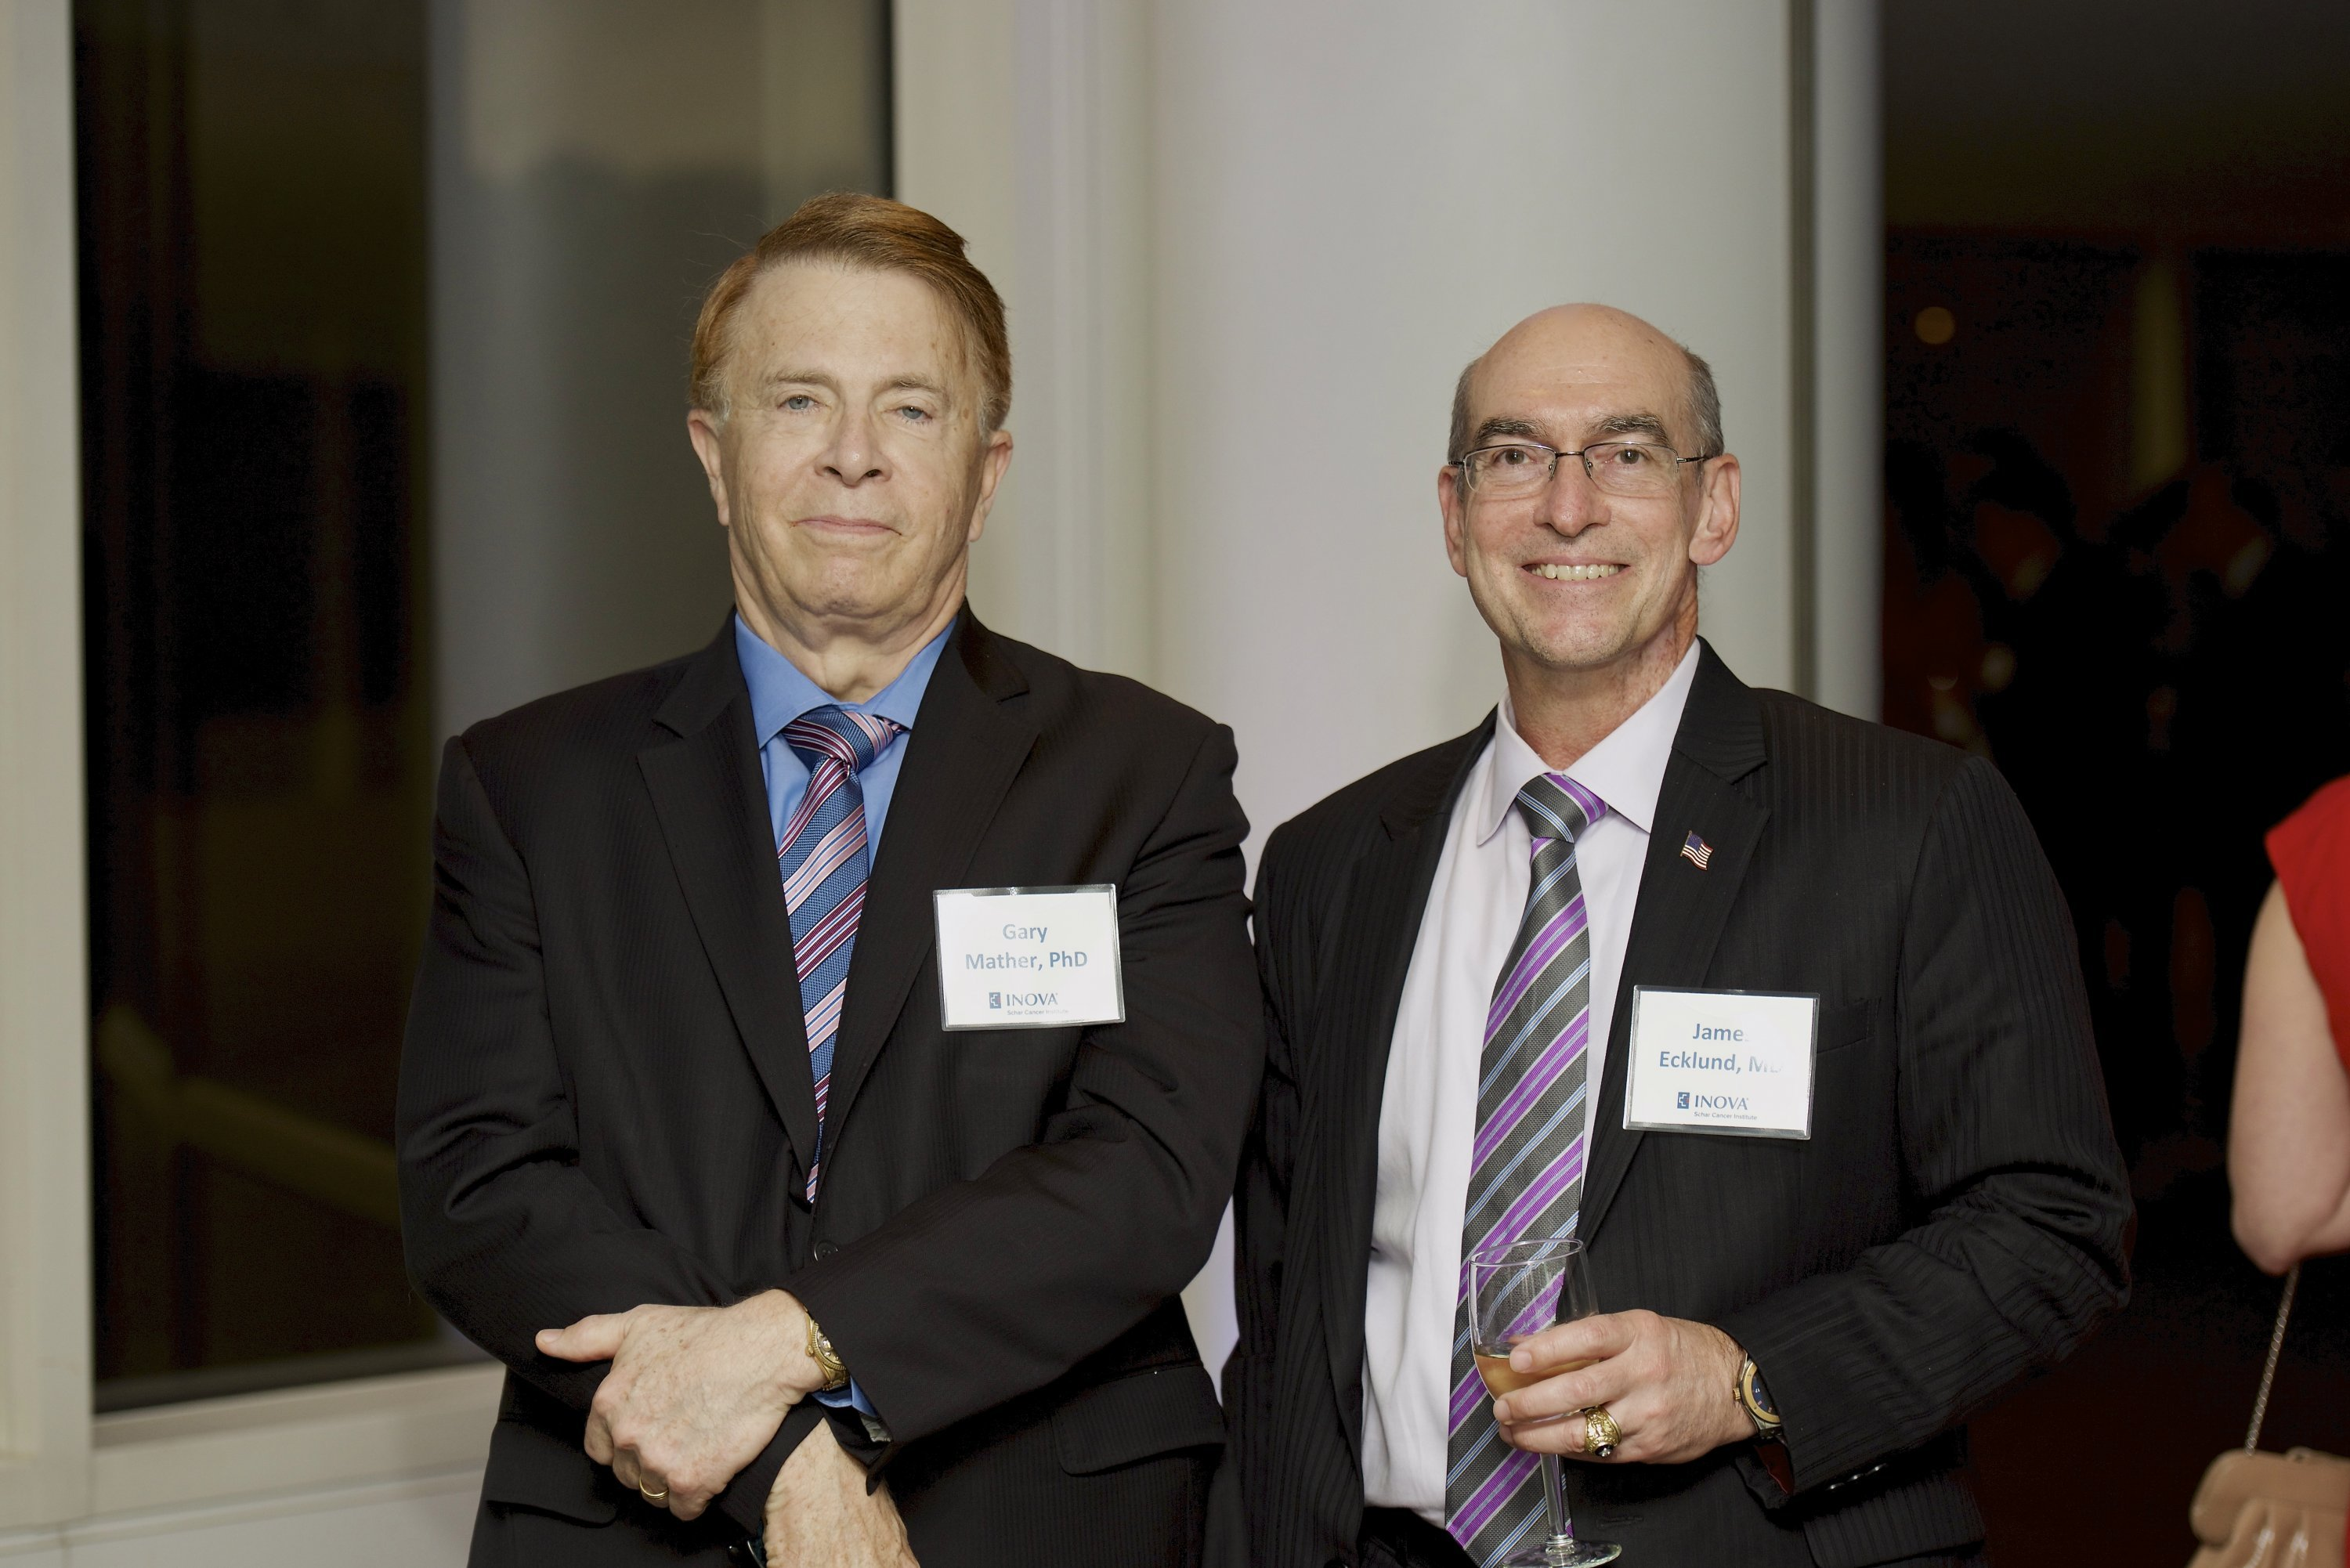 Gary Mather, PhD and James Ecklund, MD. Photograph by Sean Kelly.